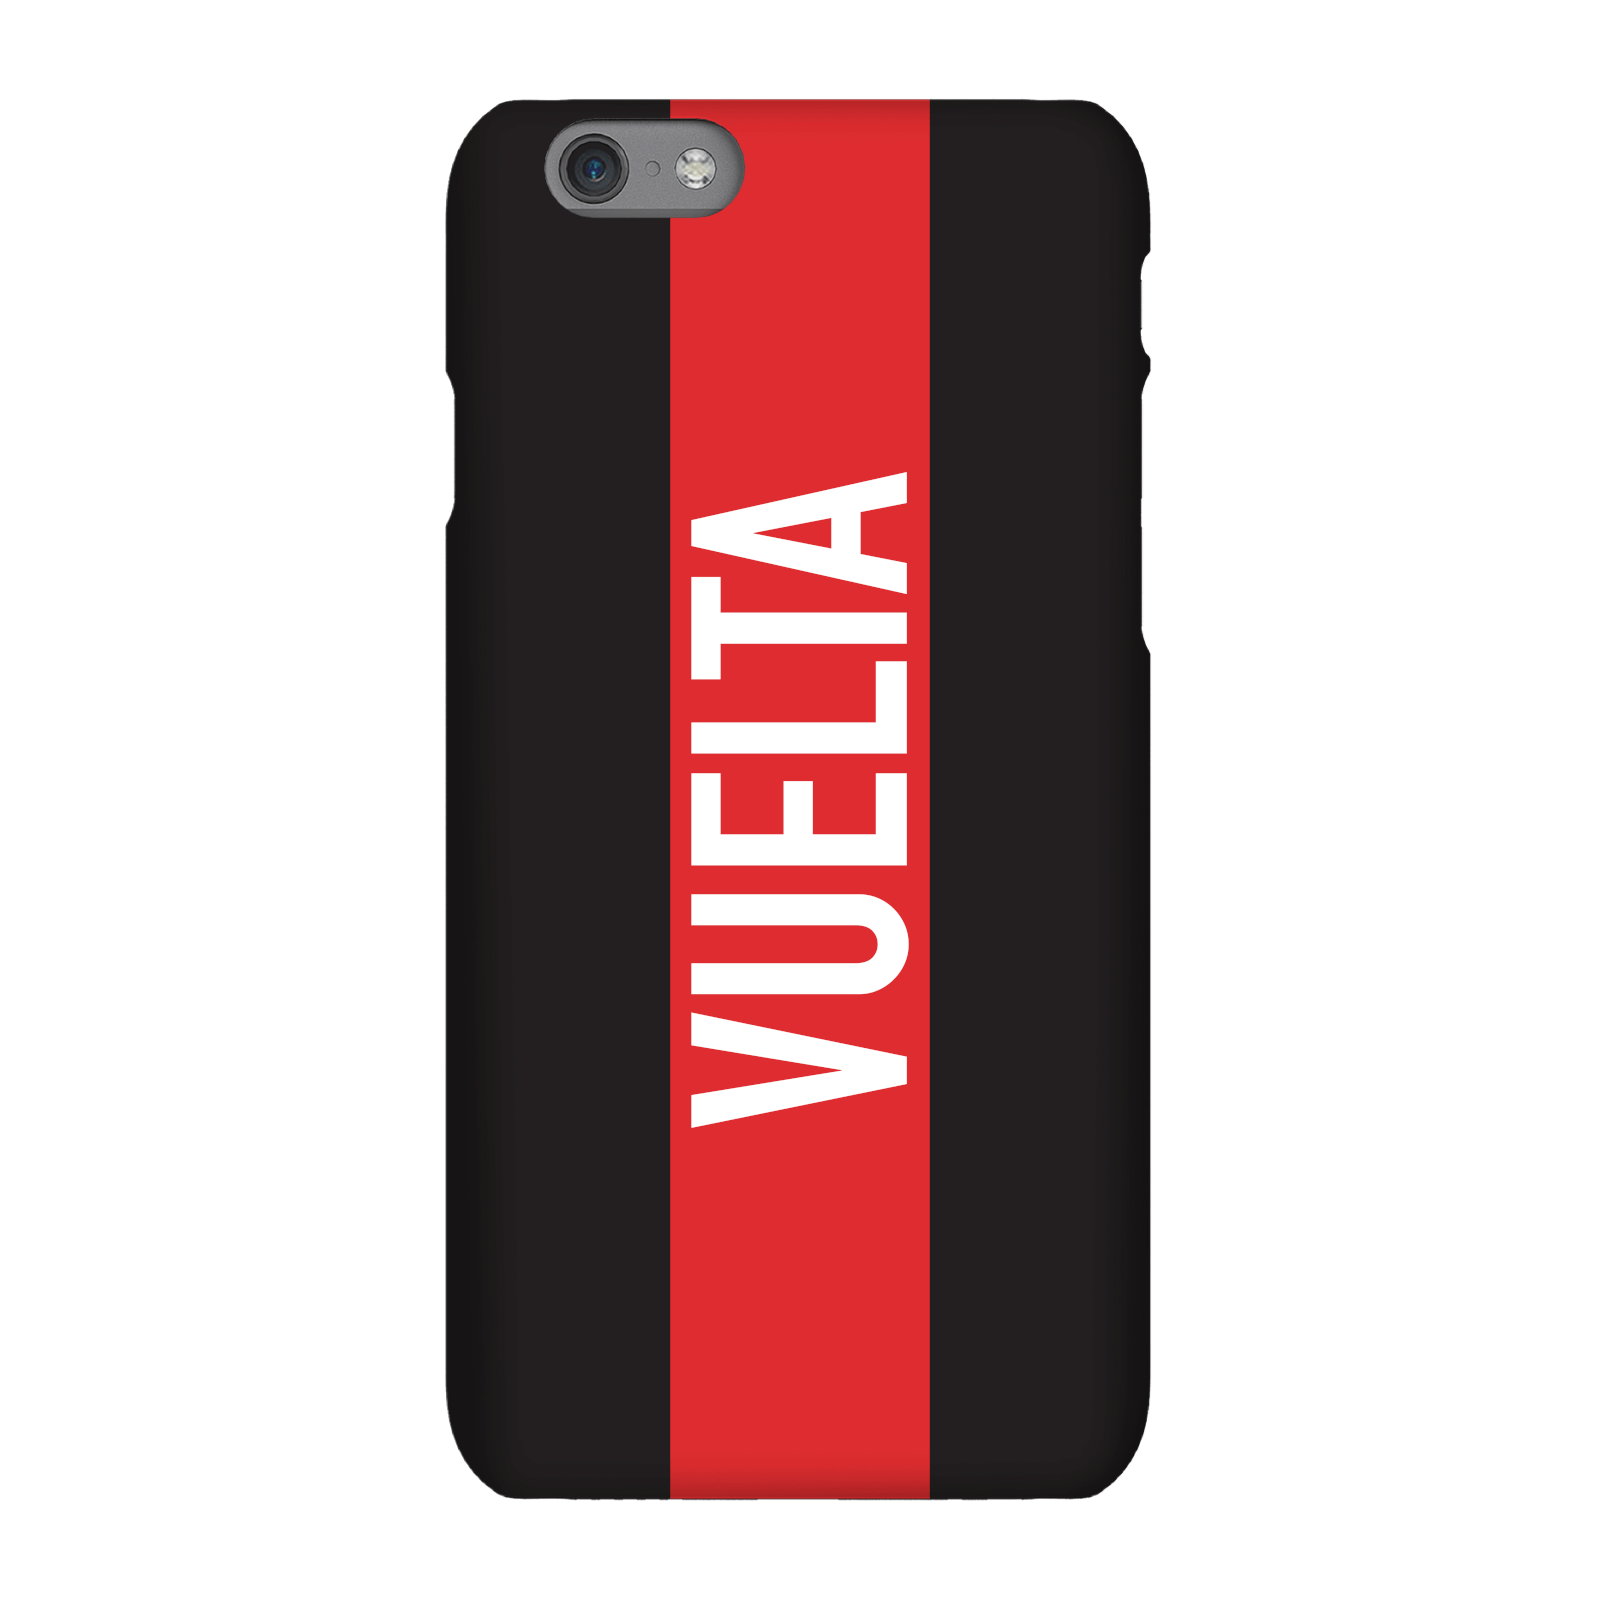 Vuelta Phone Case for iPhone and Android - Samsung Note 8 - Tough Case - Matte